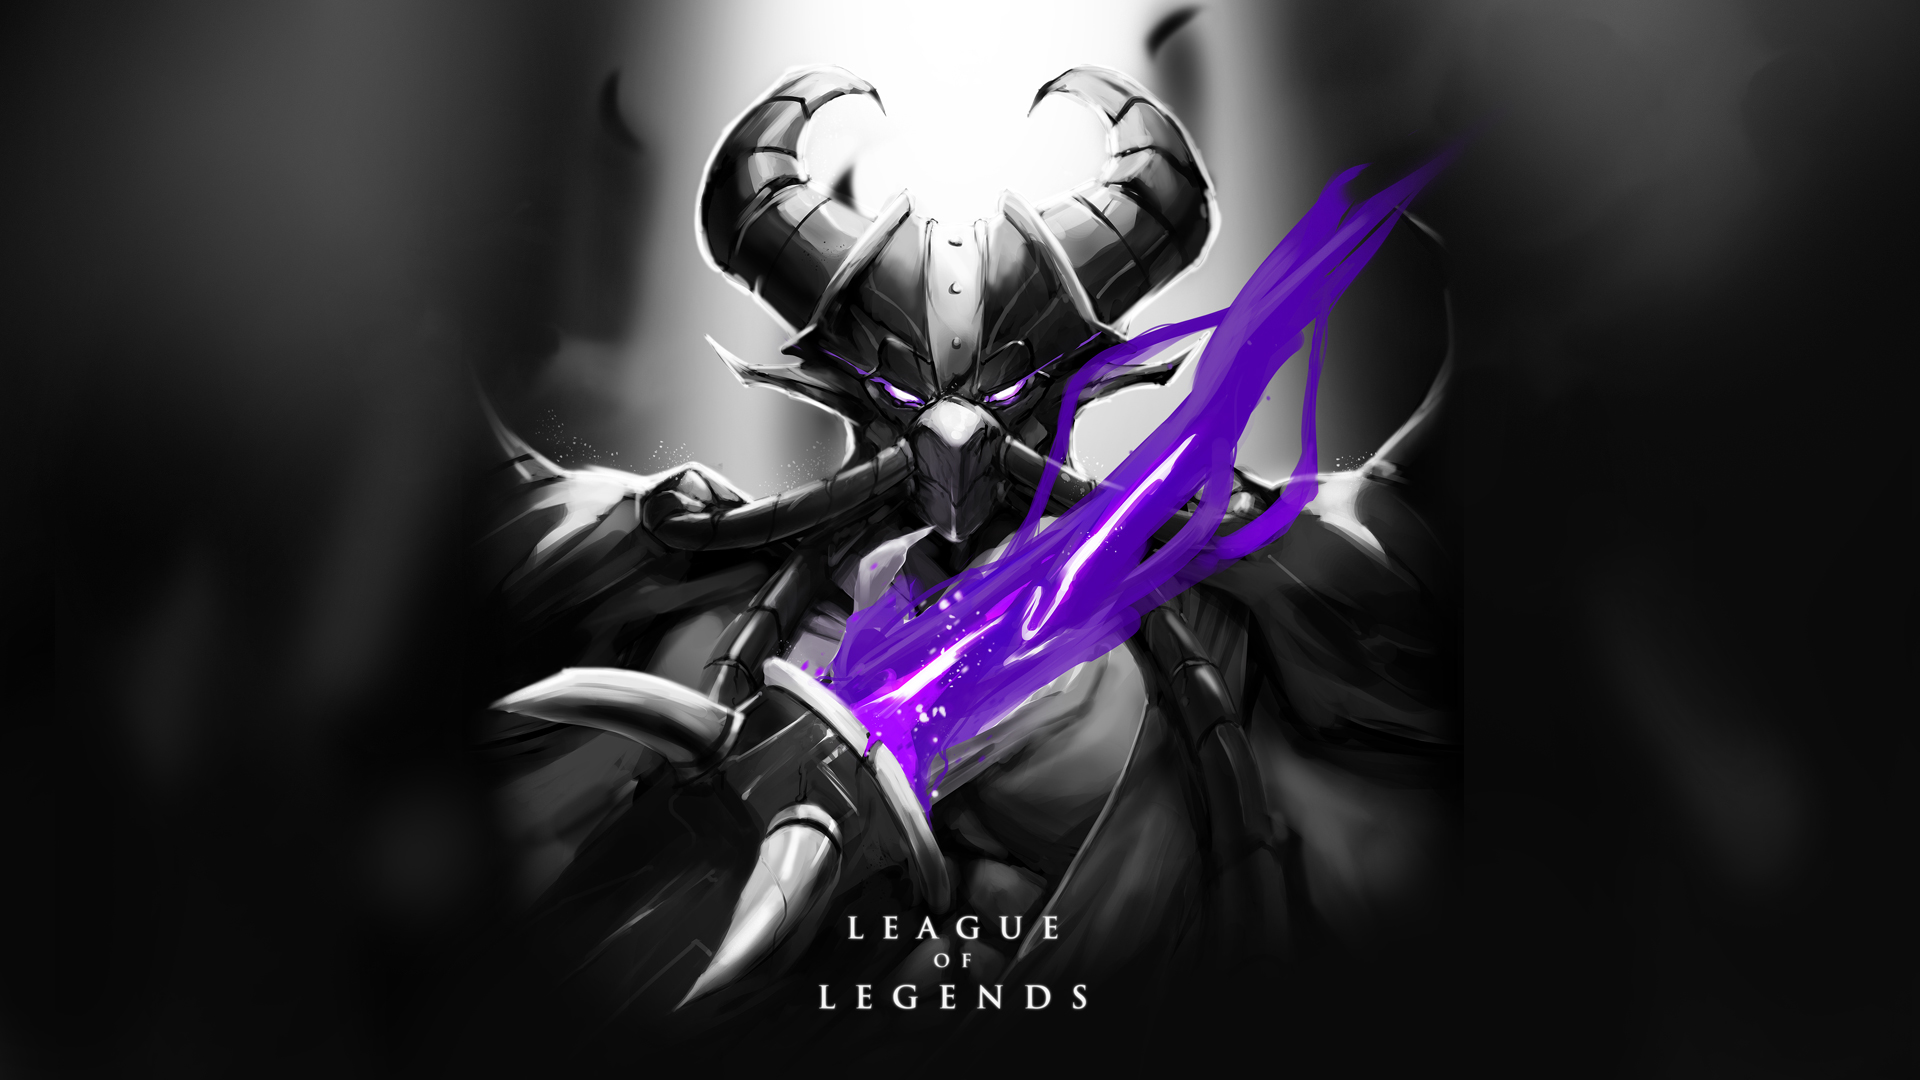 League of Legends wallpaper 96